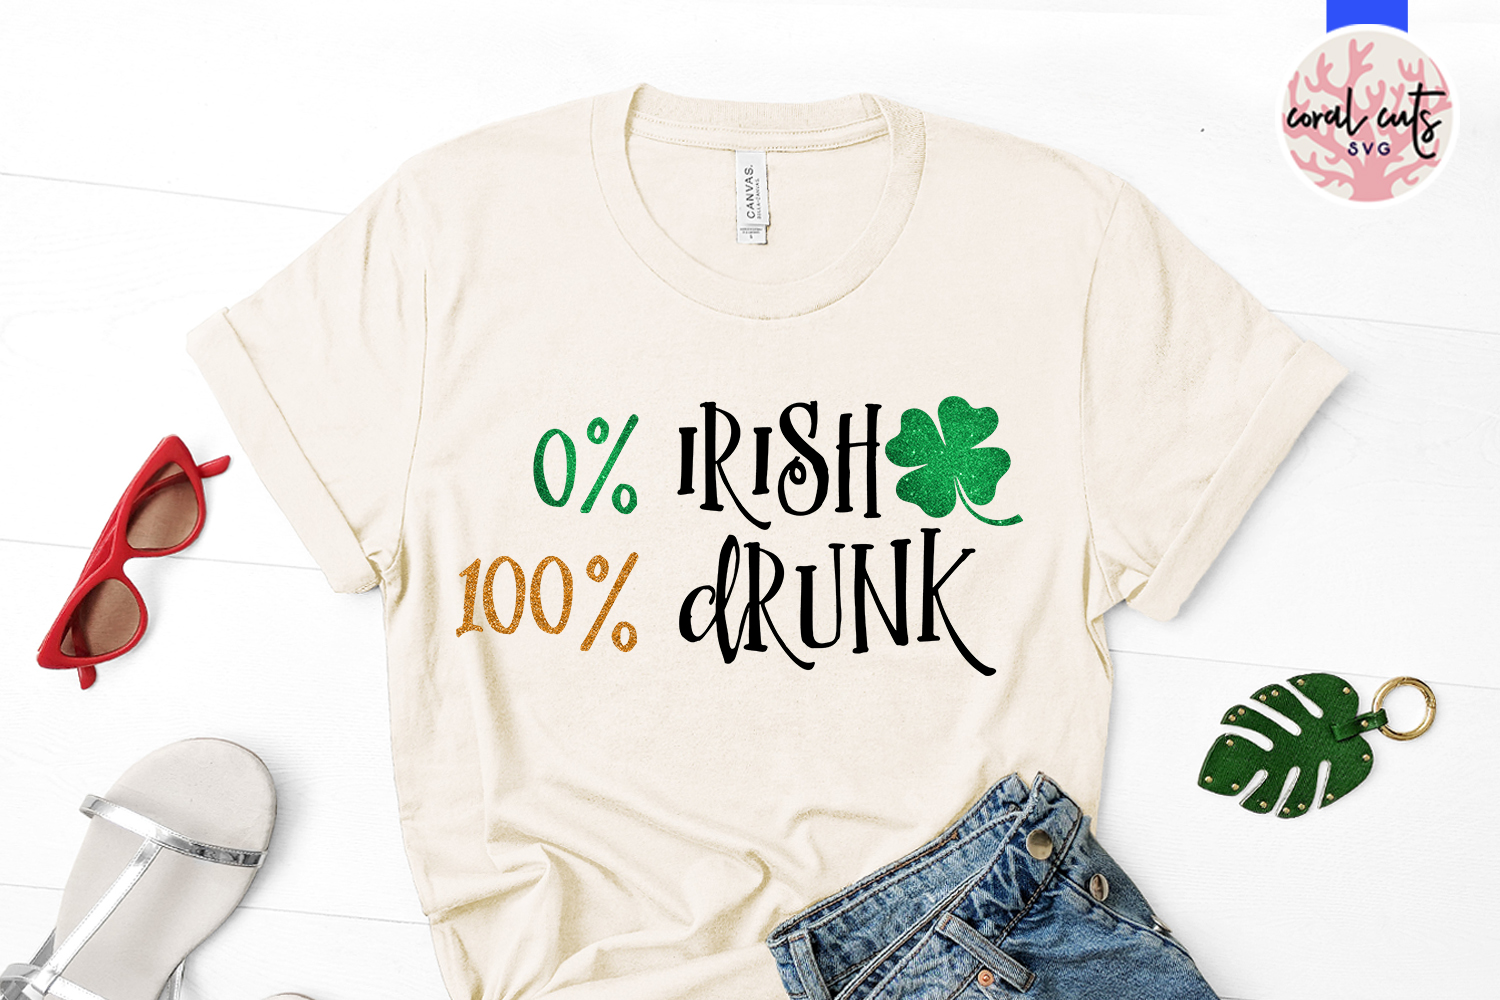 0 irish 100 drunk - St. Patrick's Day SVG EPS DXF PNG example image 2